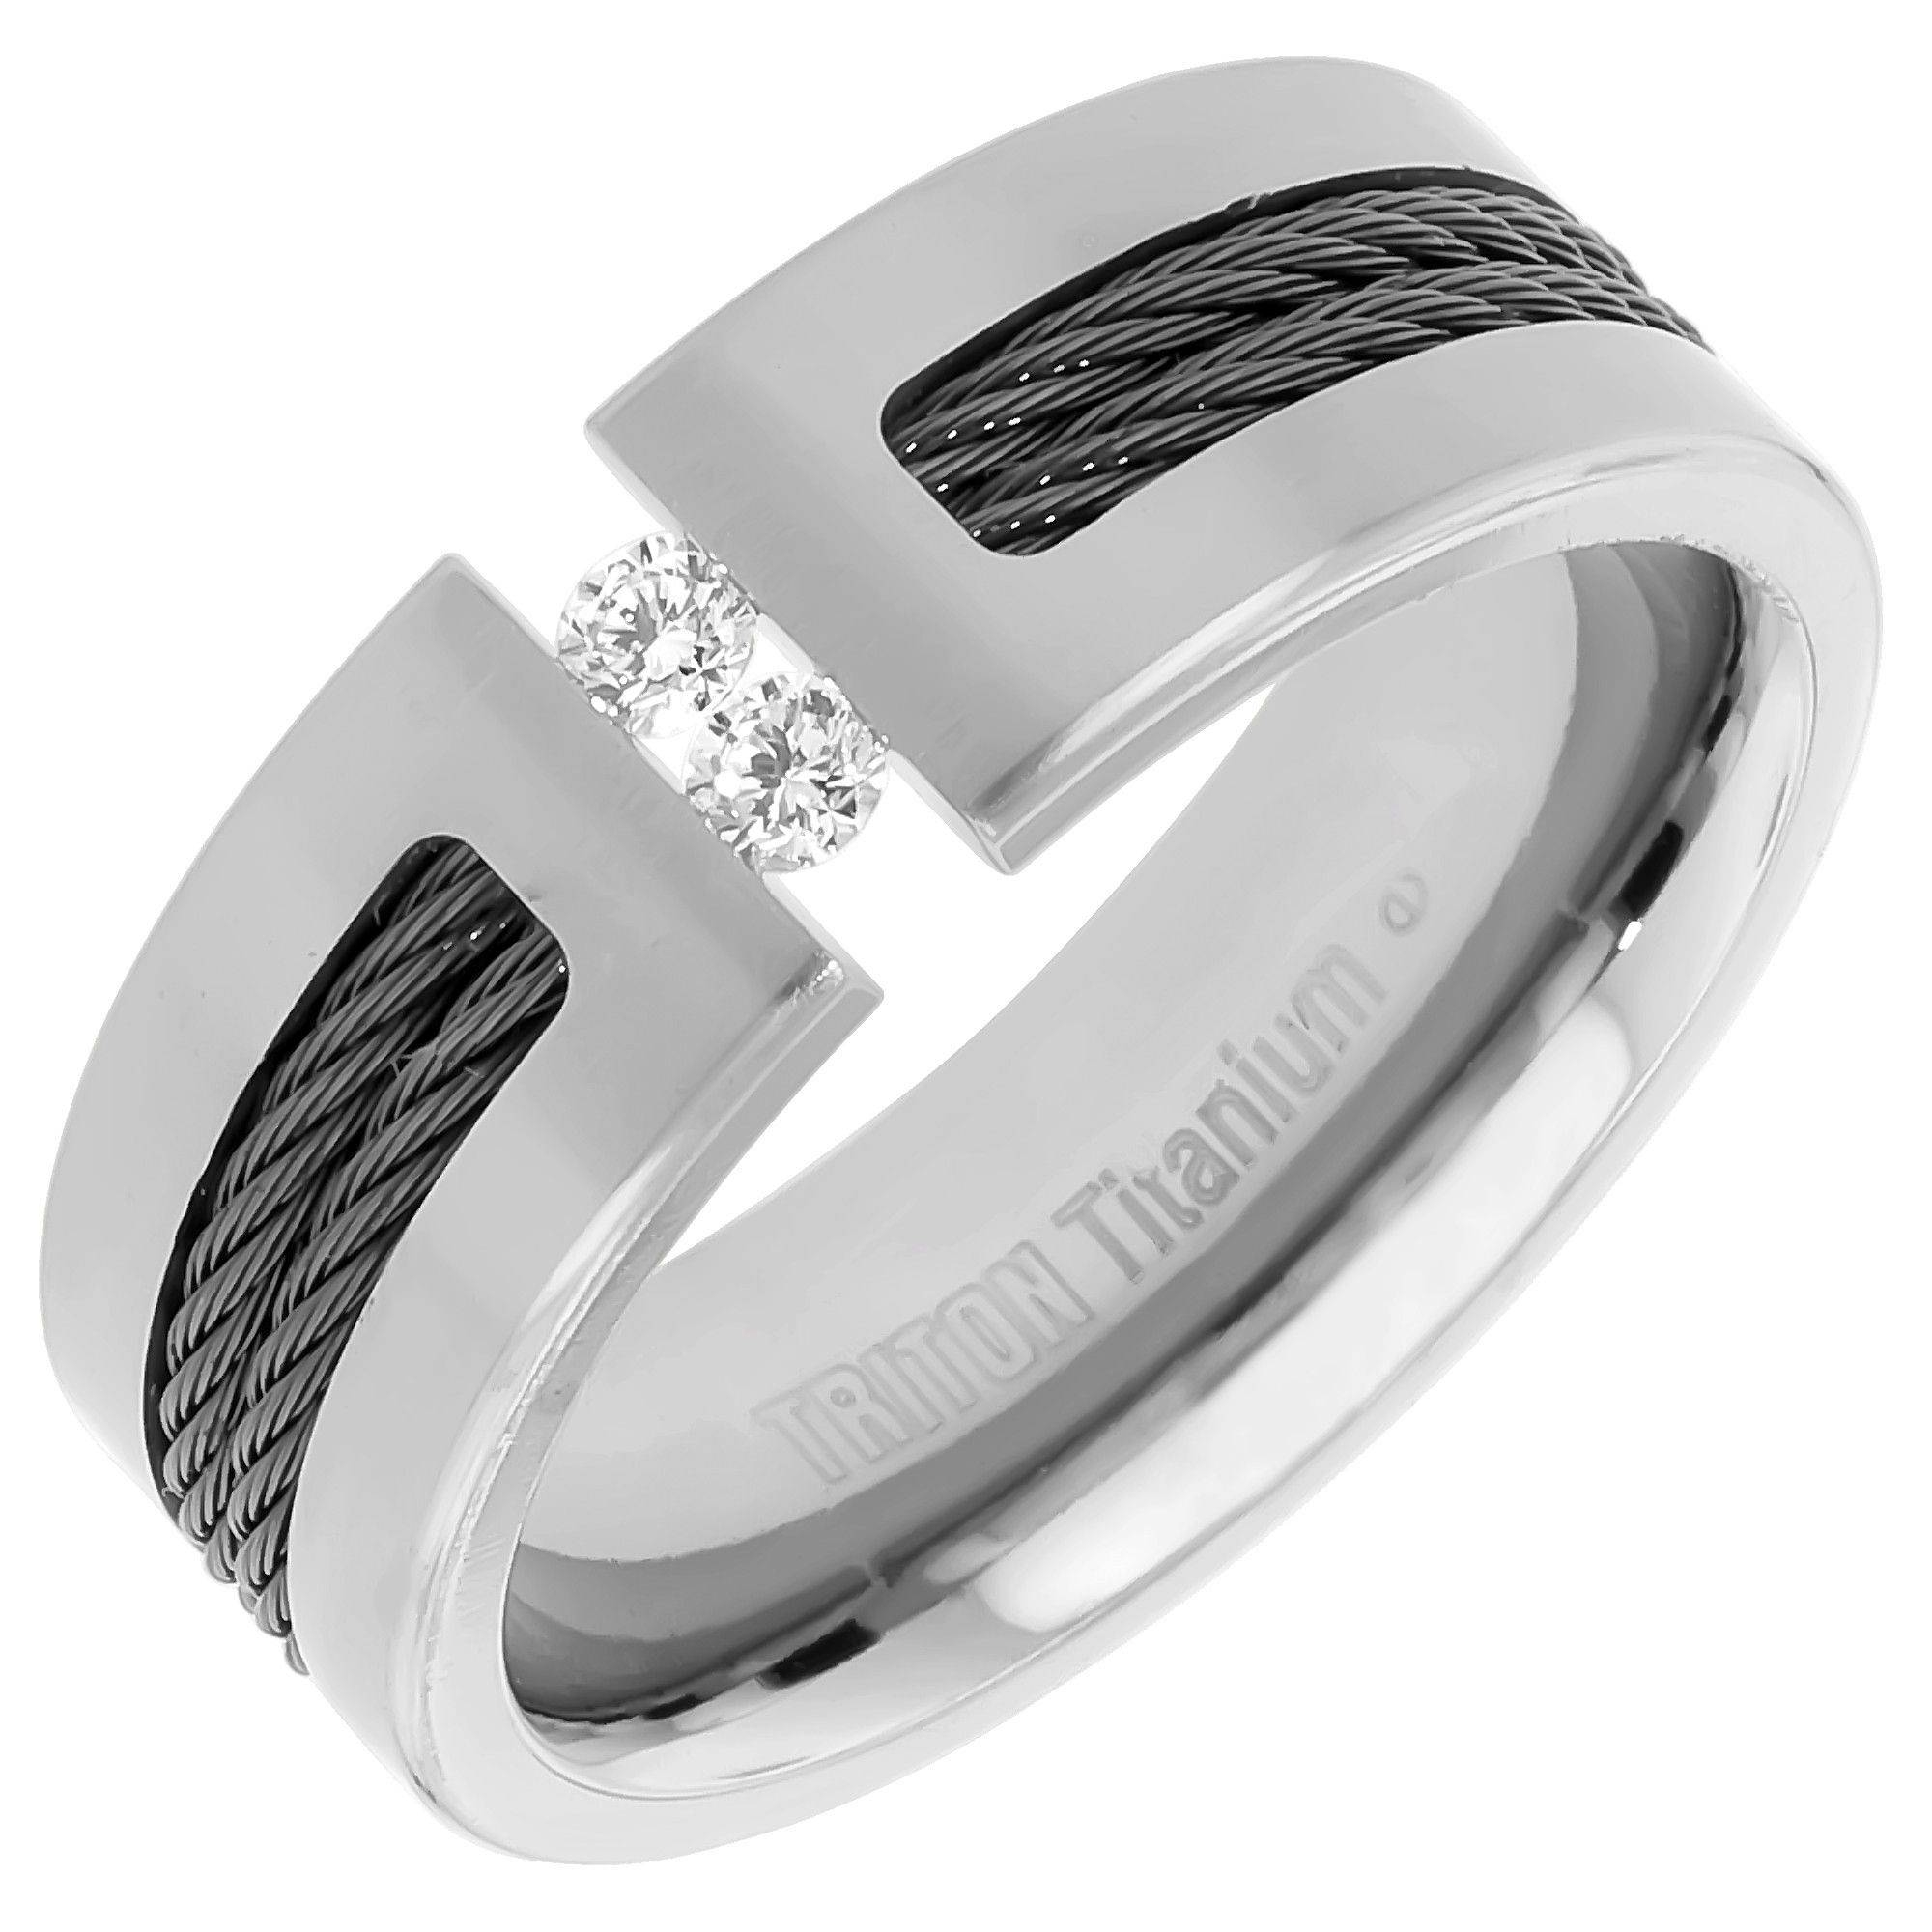 Overstock Mens Wedding Rings Fresh Titanium And Diamond Mens Intended For Overstock Wedding Bands (View 3 of 15)